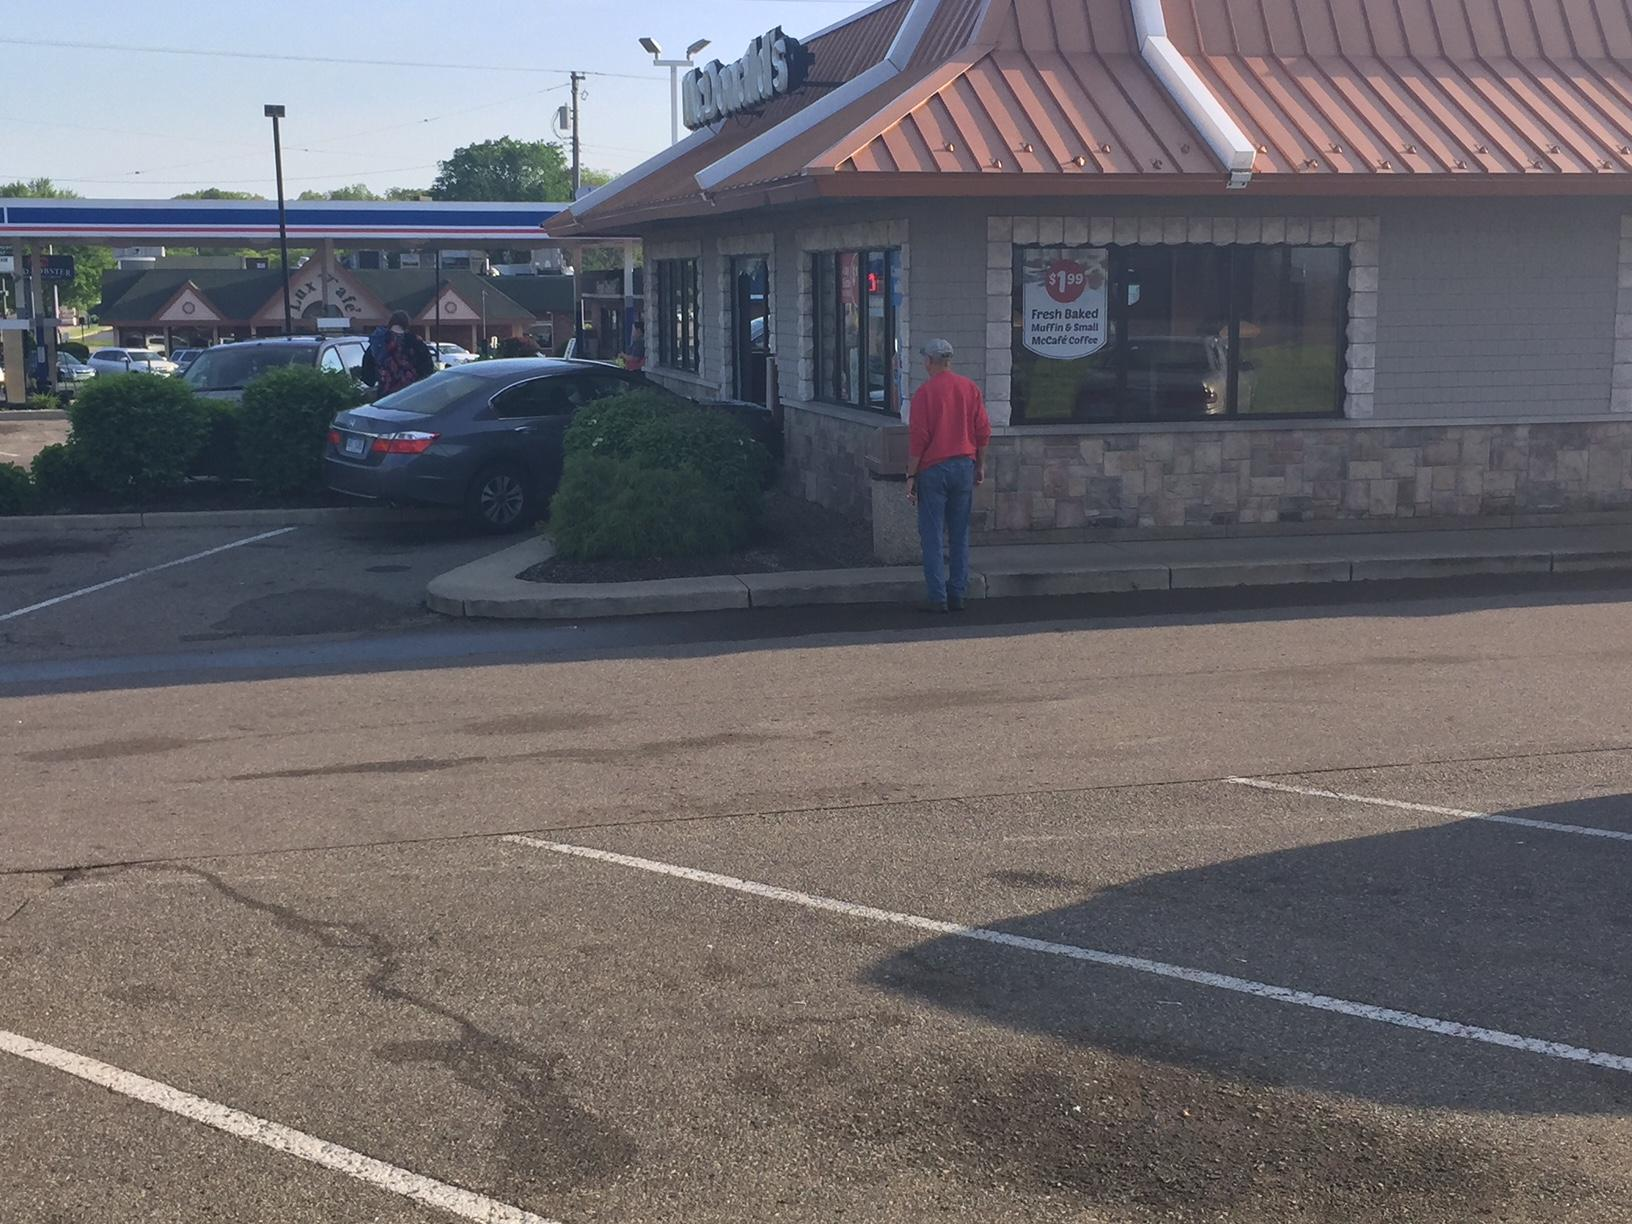 A car crashed into the McDonald's on Capital Avenue in Battle Creek Friday morning. (WWMT/Jason Puhr)